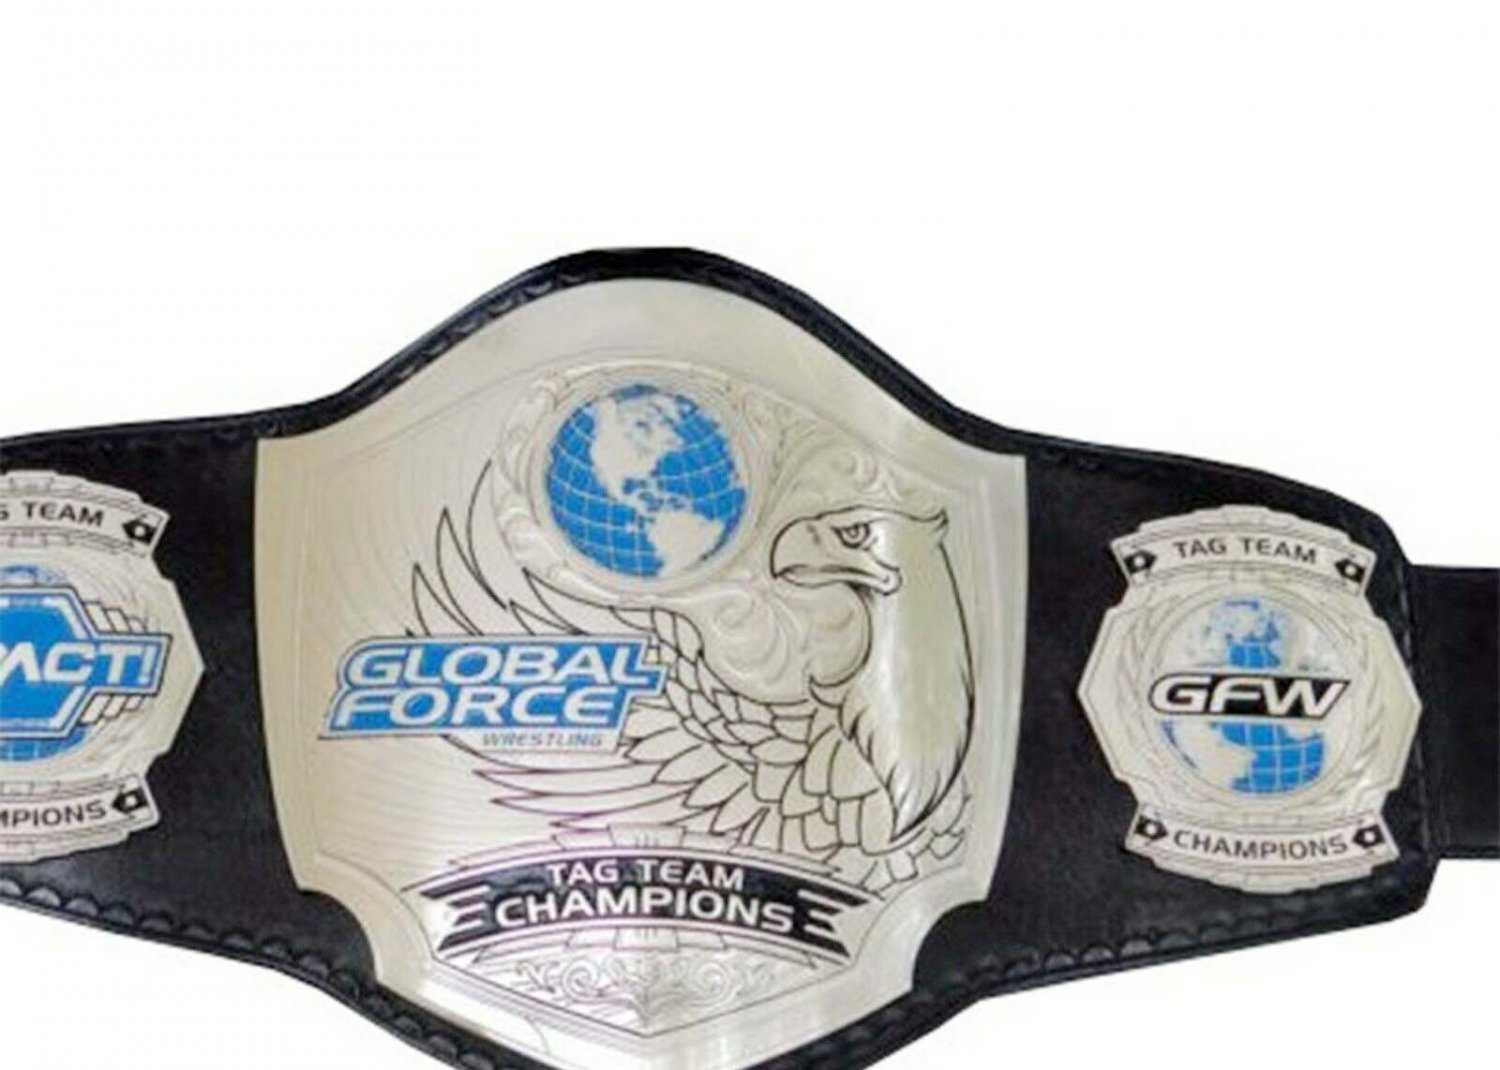 GFW GLOBAL FORCE TAG TEAM IMPACT WRESTLING CHAMPIONSHIP LEATHER STRAP BELT